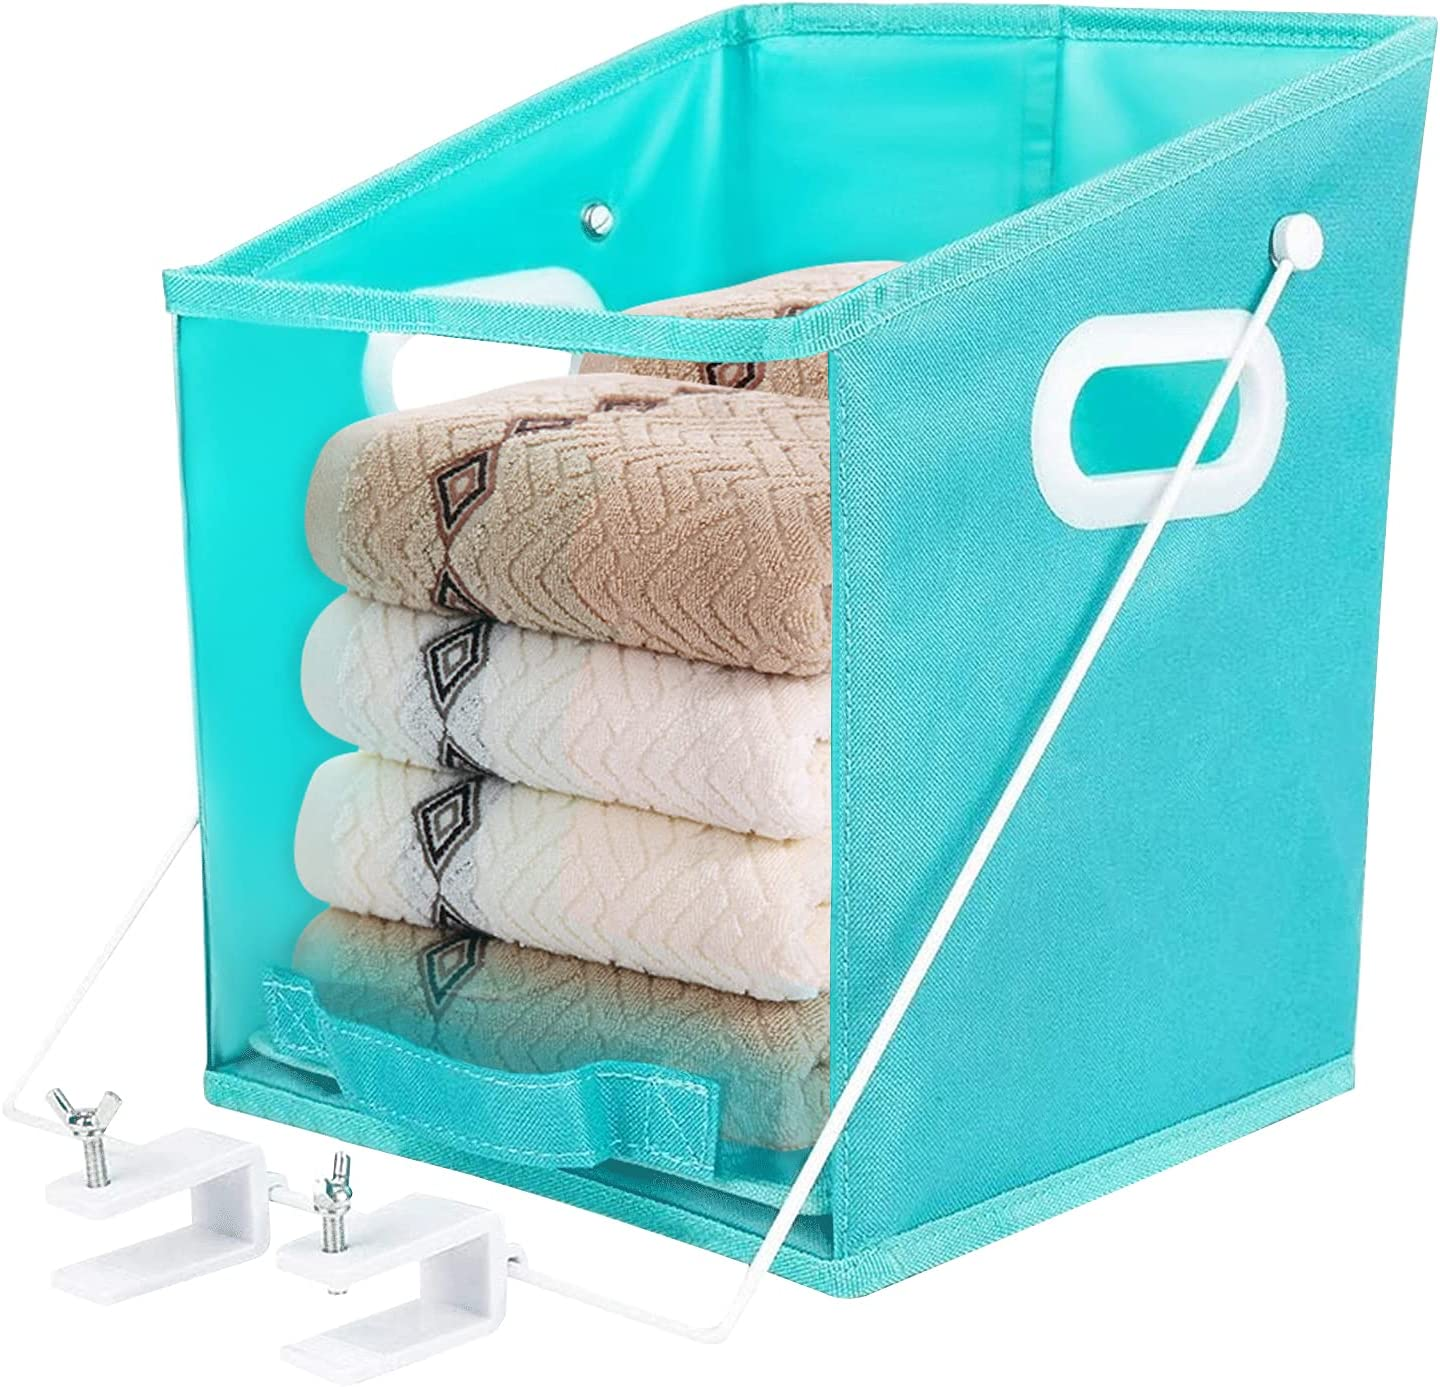 PAPALALETY Closet Caddy Pull Down Shelf Clothes Storage Box Rotatable Retrieve Closet Storage with Carry Handle Foldable Closet Organizer, Clear Window for Clothes, Blankets, Closets, Bedrooms